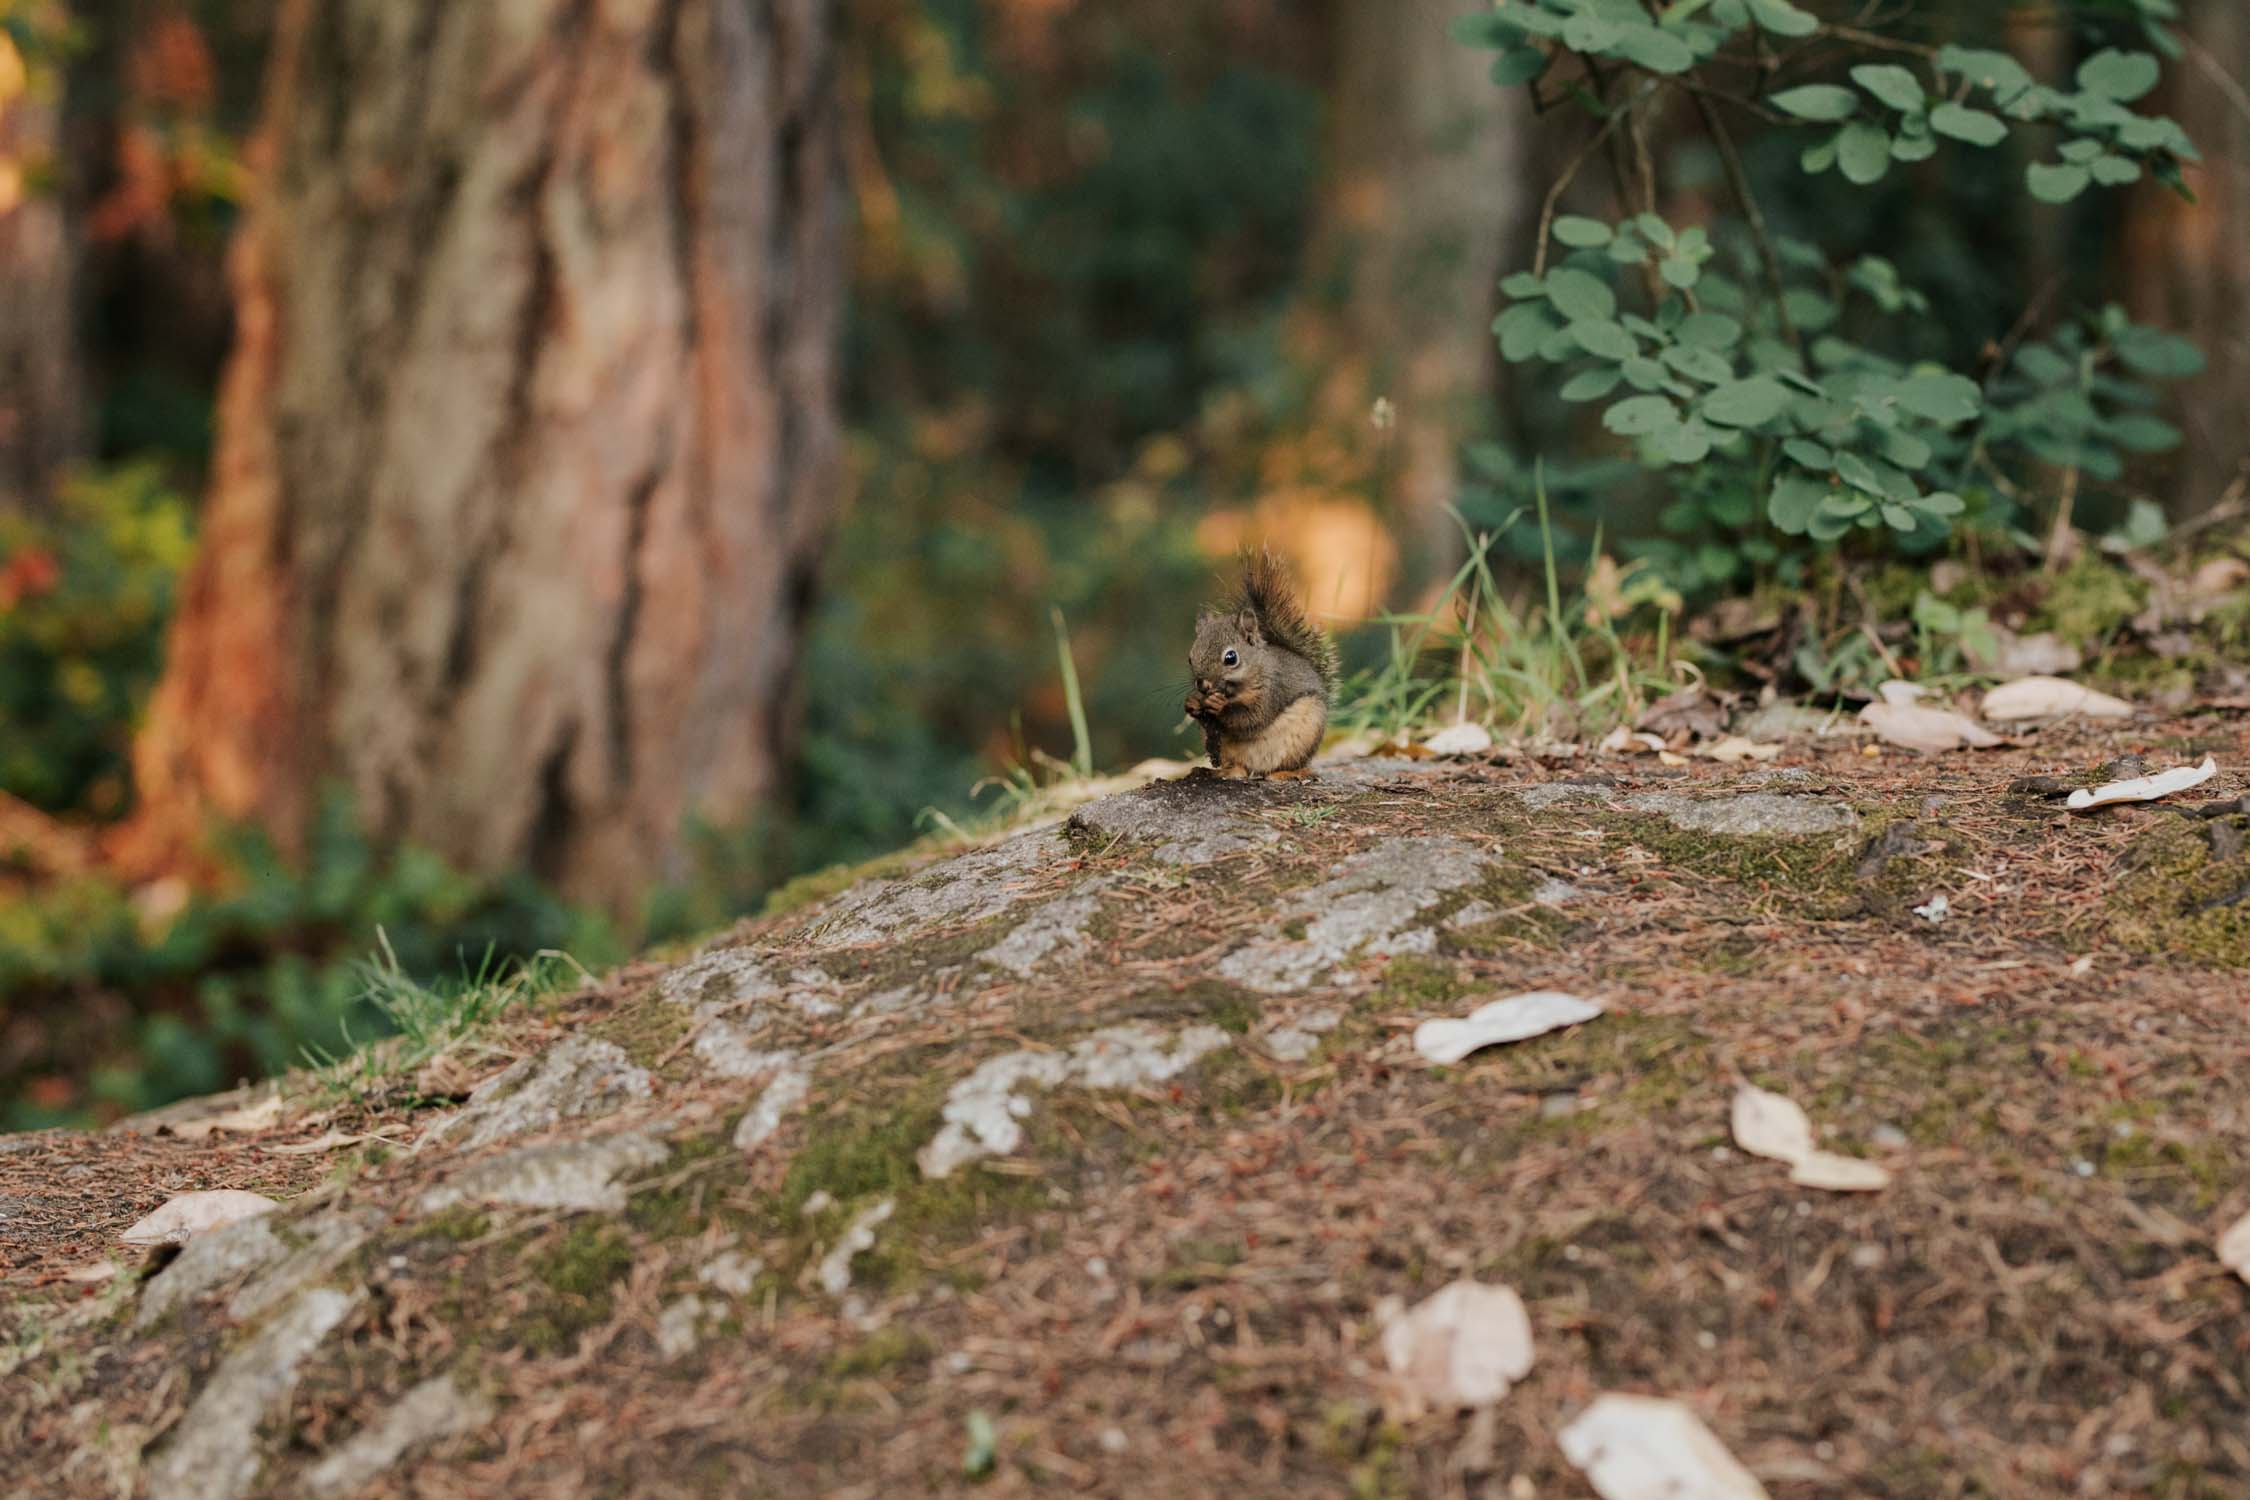 Small brown squirrel sitting on a rock in forest at Lighthouse Park, West Vancouver